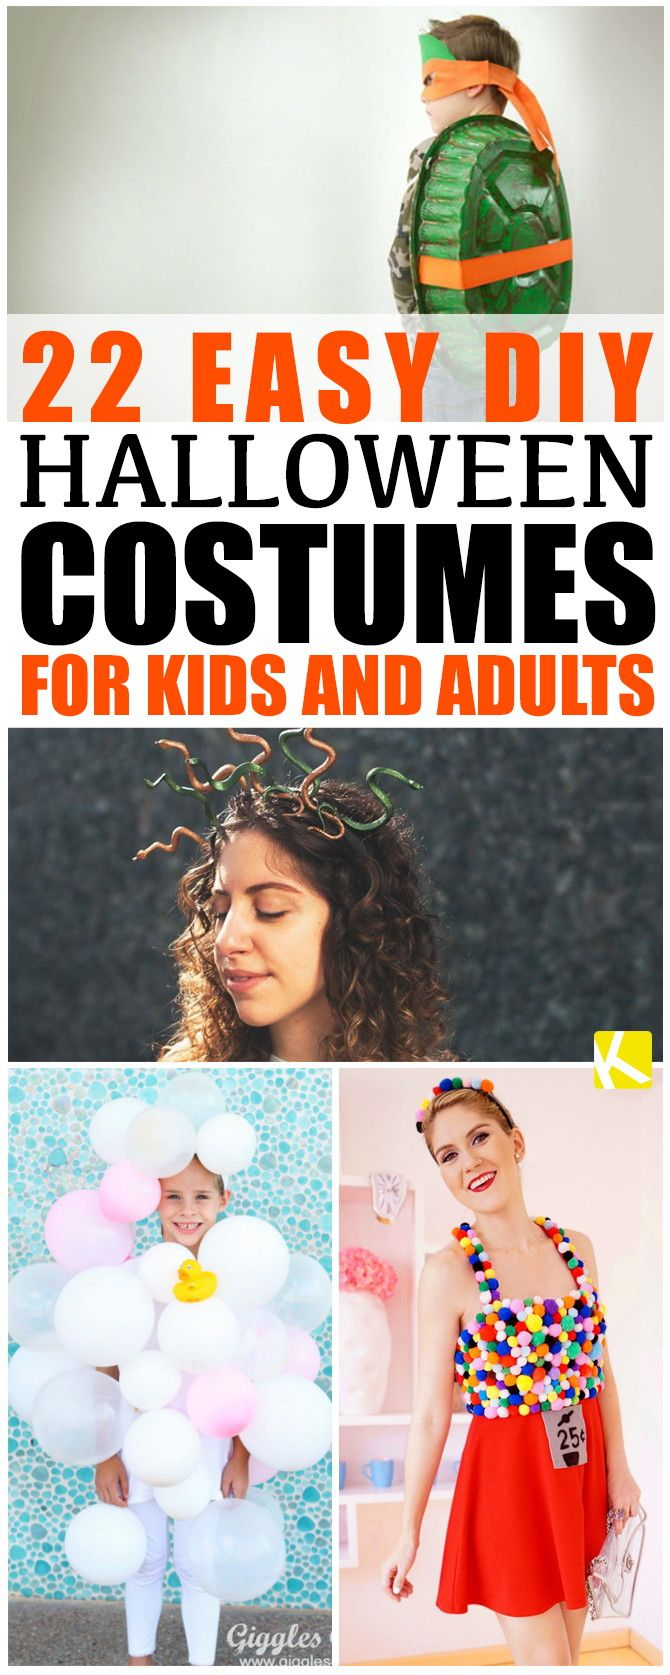 22 Easy DIY Halloween Costumes for Kids and Adults